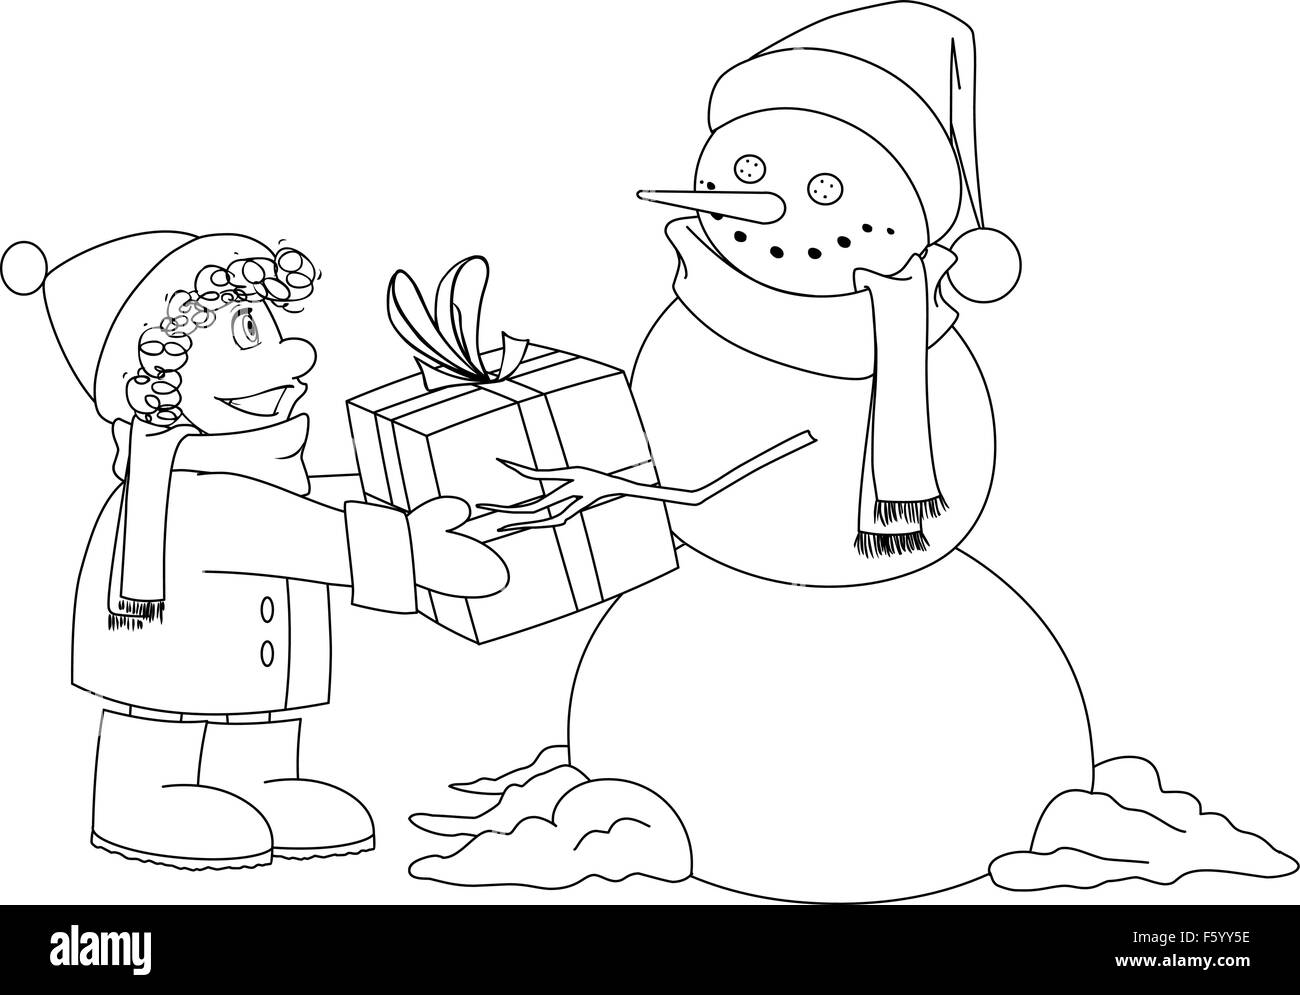 vector illustration coloring page of a snowman giving a present to